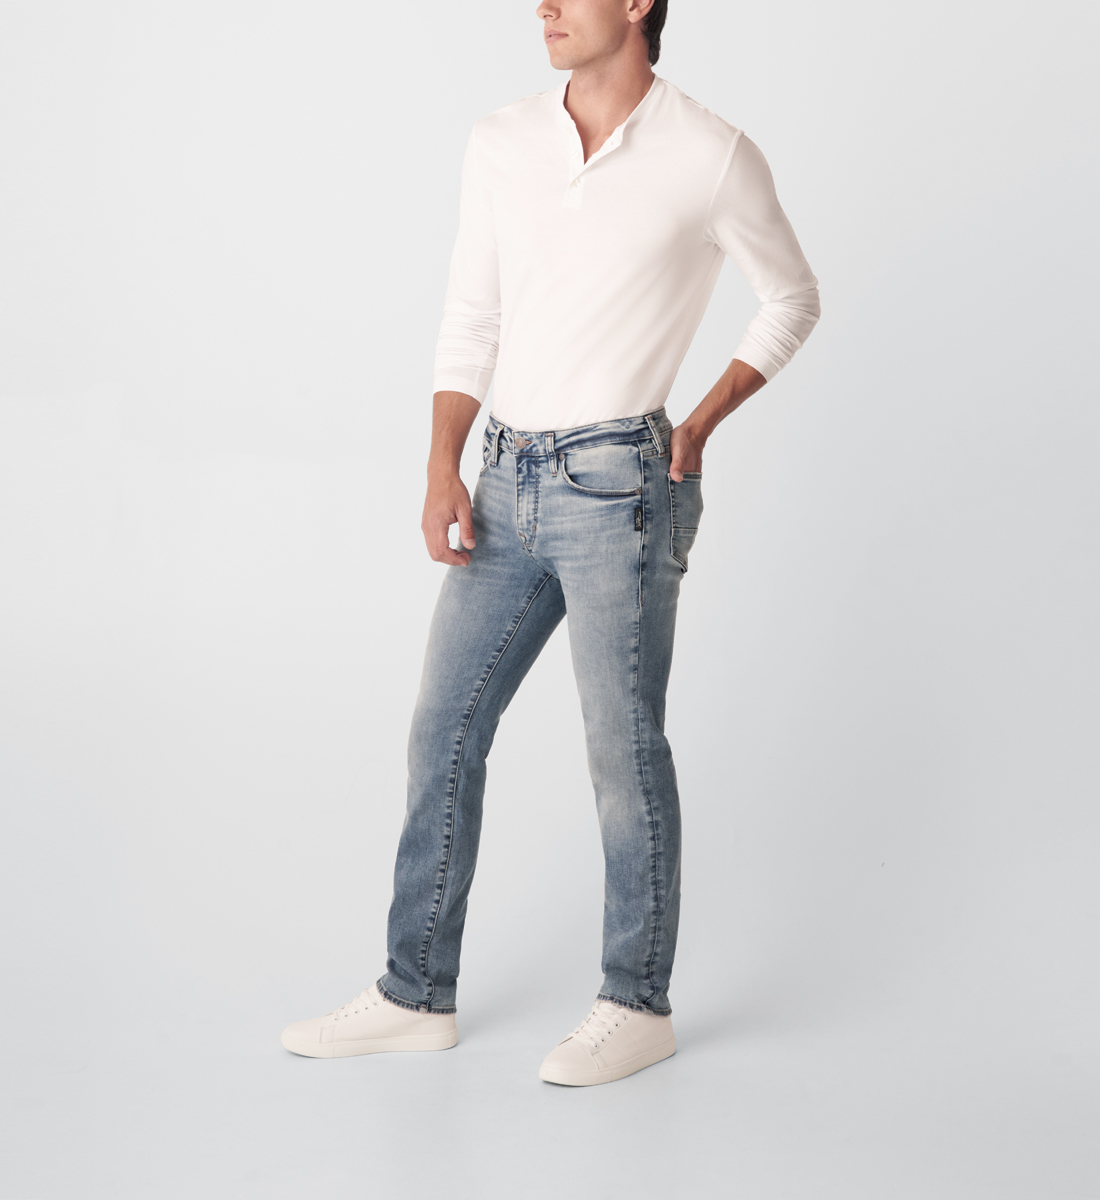 Kenaston Slim Fit Slim Leg Jeans Side